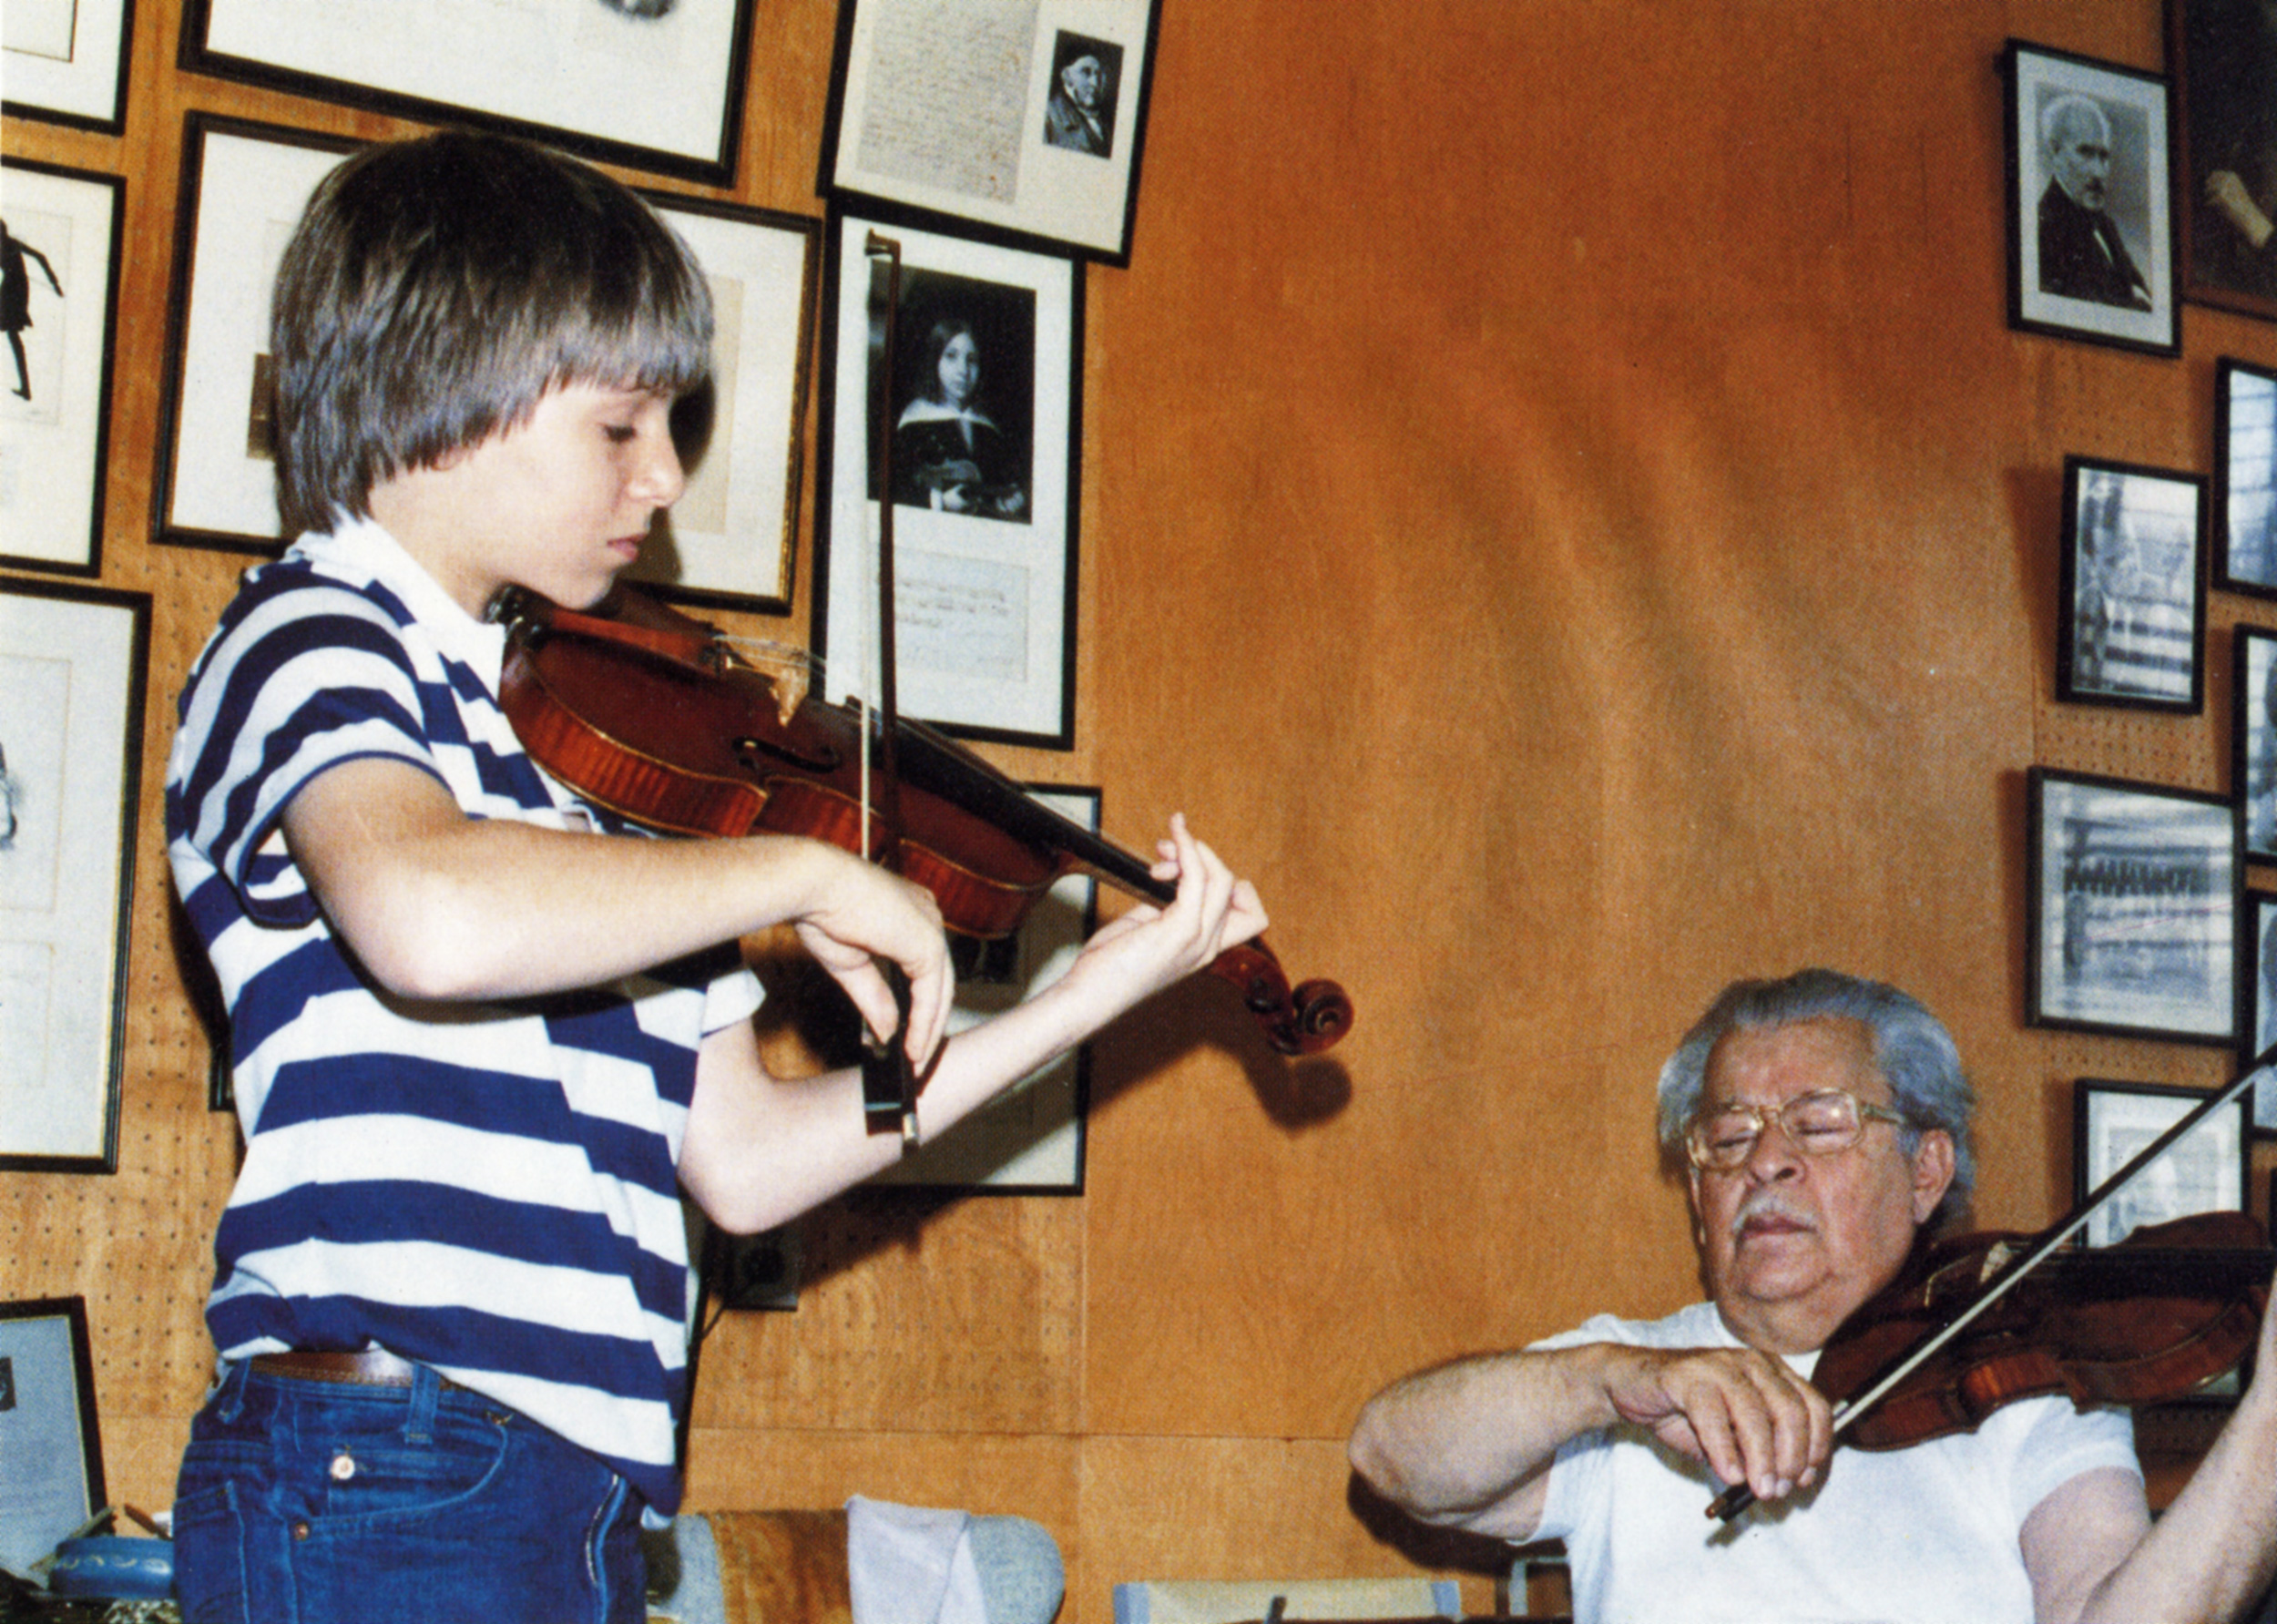 Gingold with one of his many famous pupils, a young Joshua Bell. Read what Joshua Bell had to say about his beloved teacher  here .